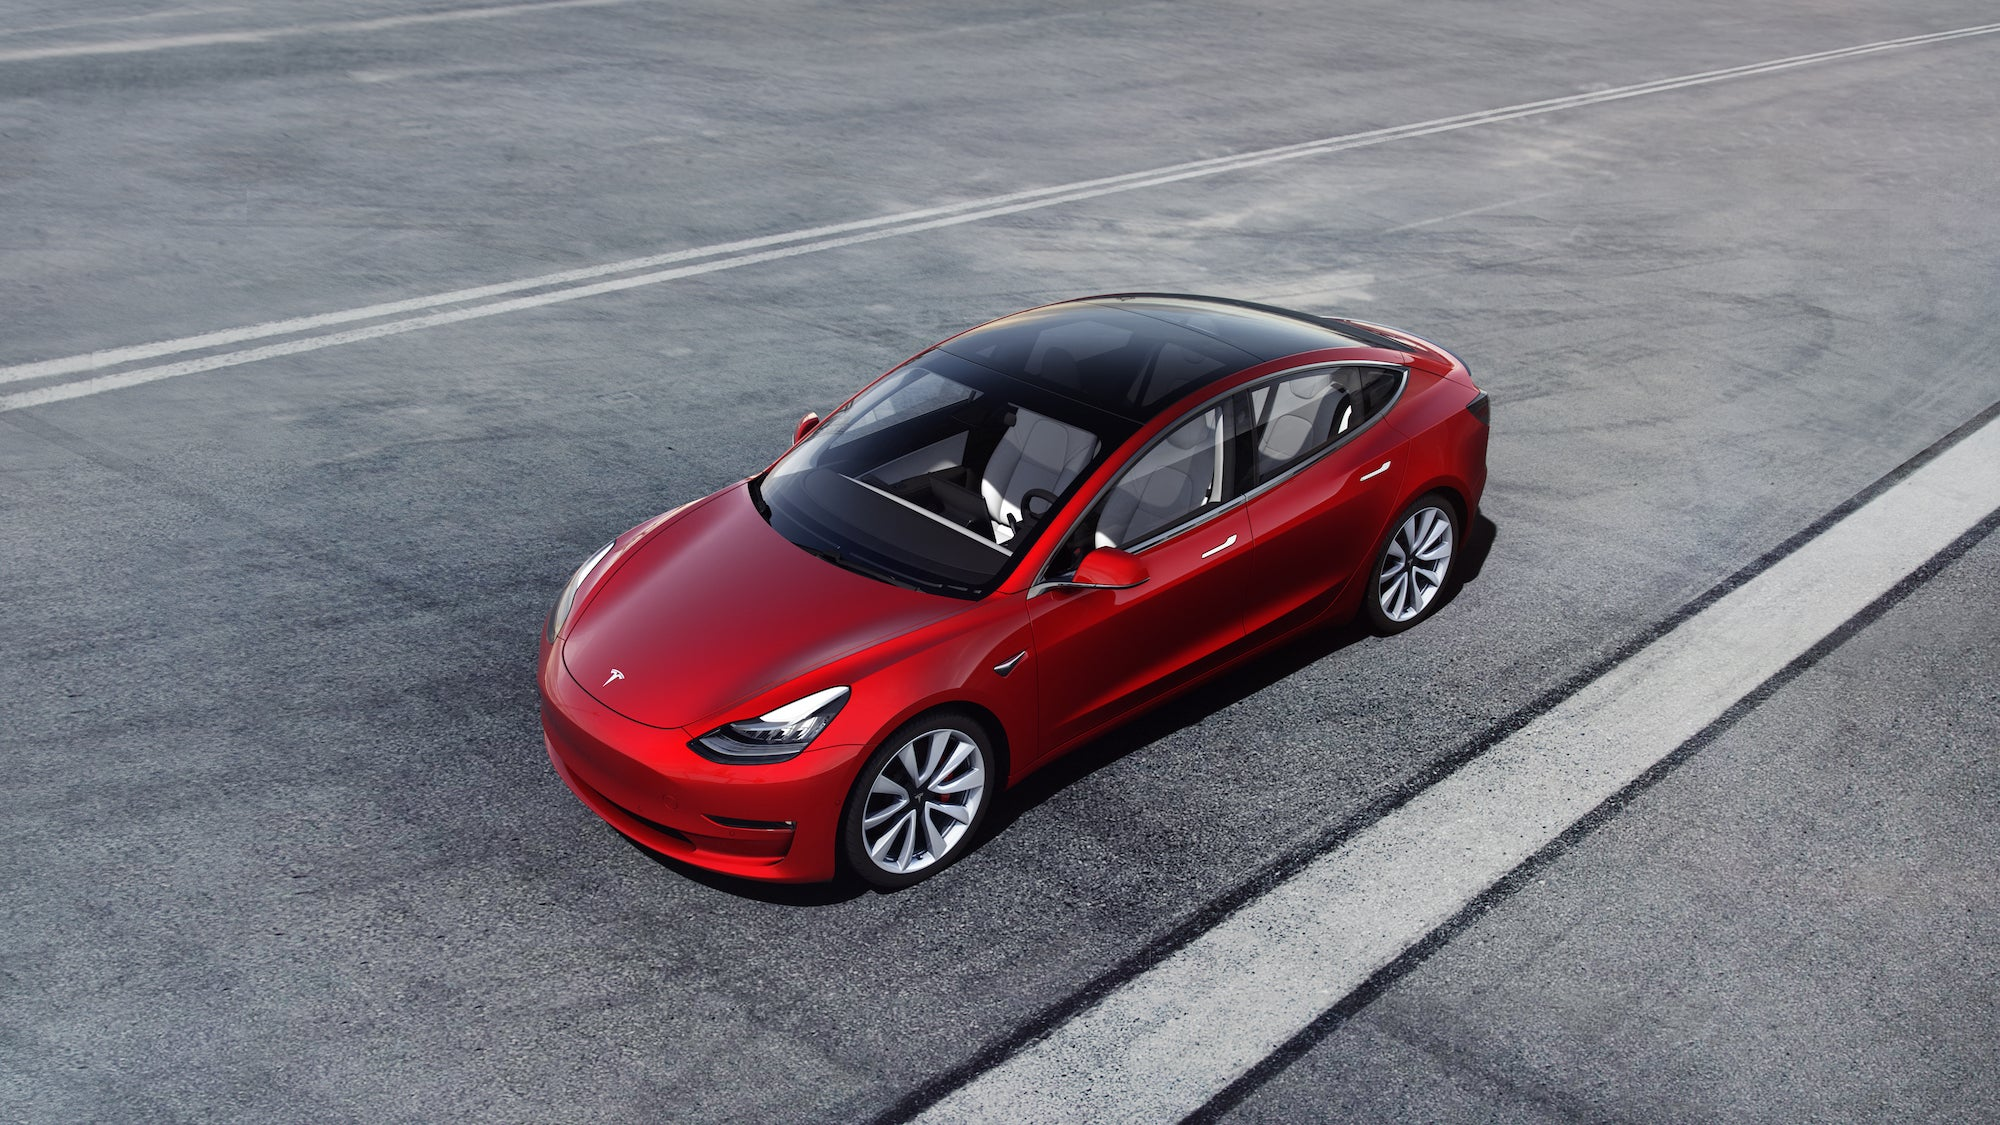 Tesla Model 3: One of the World's Safest Cars?